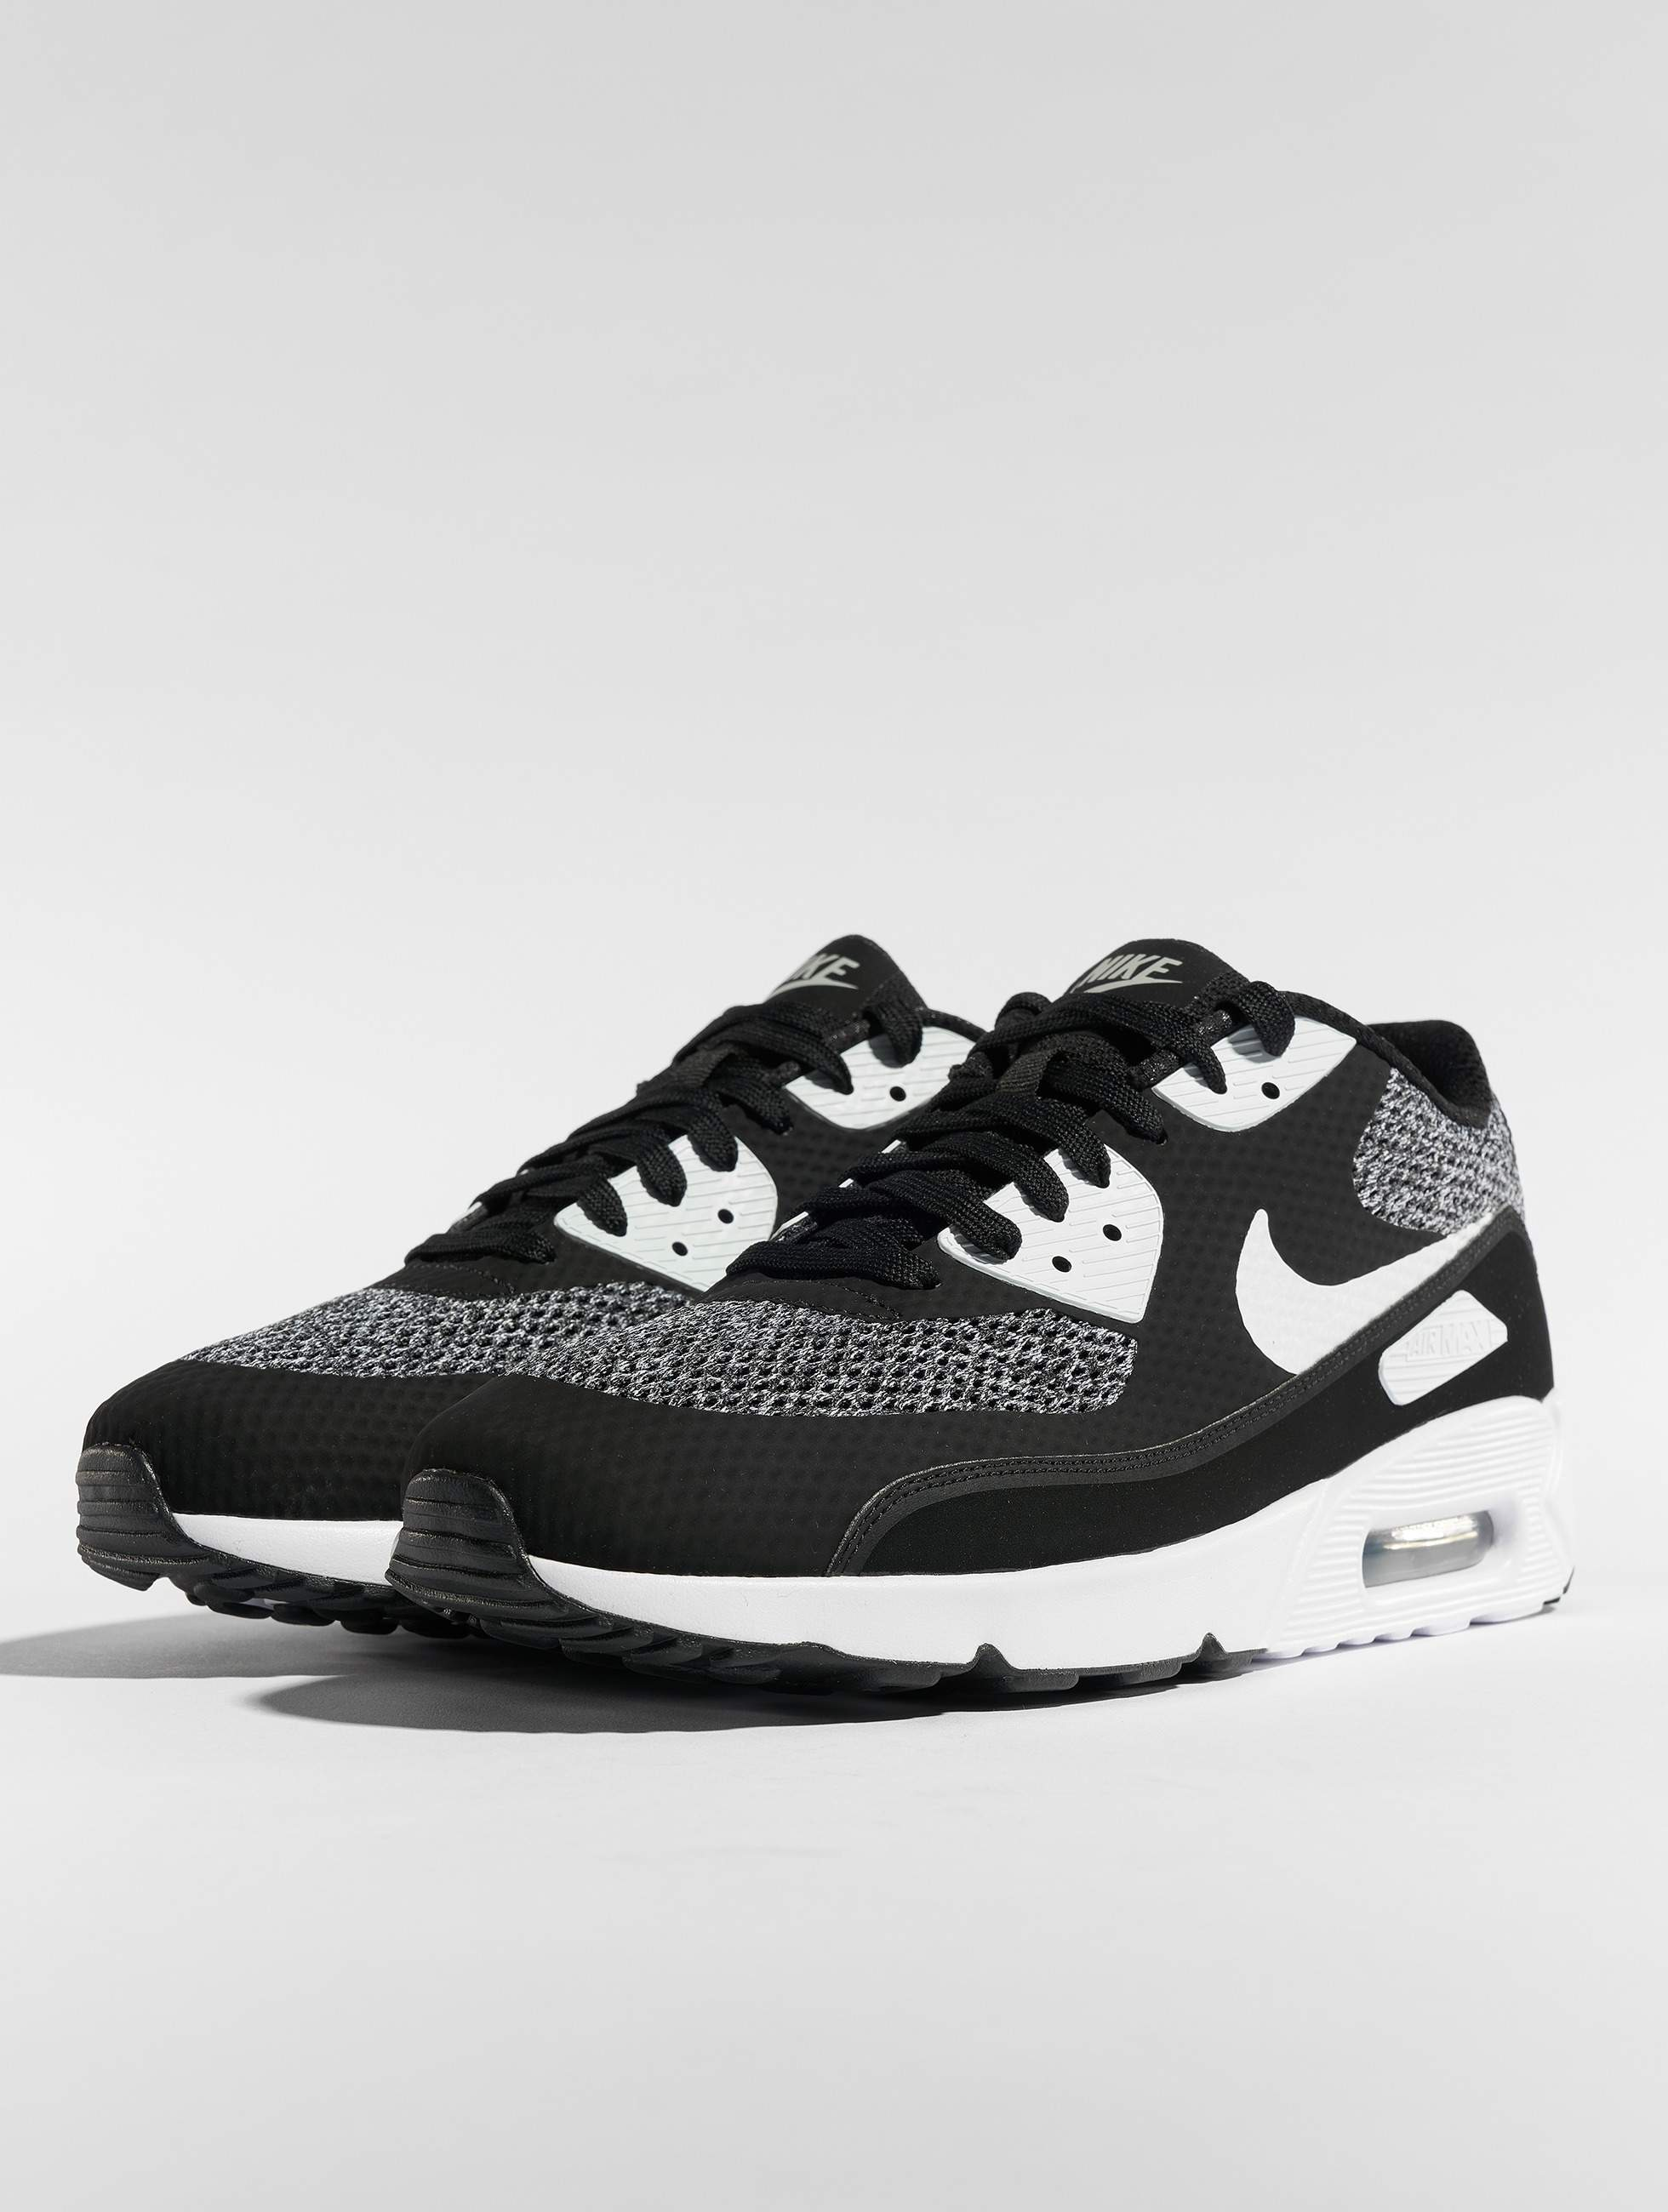 sports shoes b9cb1 aa1cf Nike Skor   Sneakers Air Max 90 Ultra 2.0 Essential i svart 537010